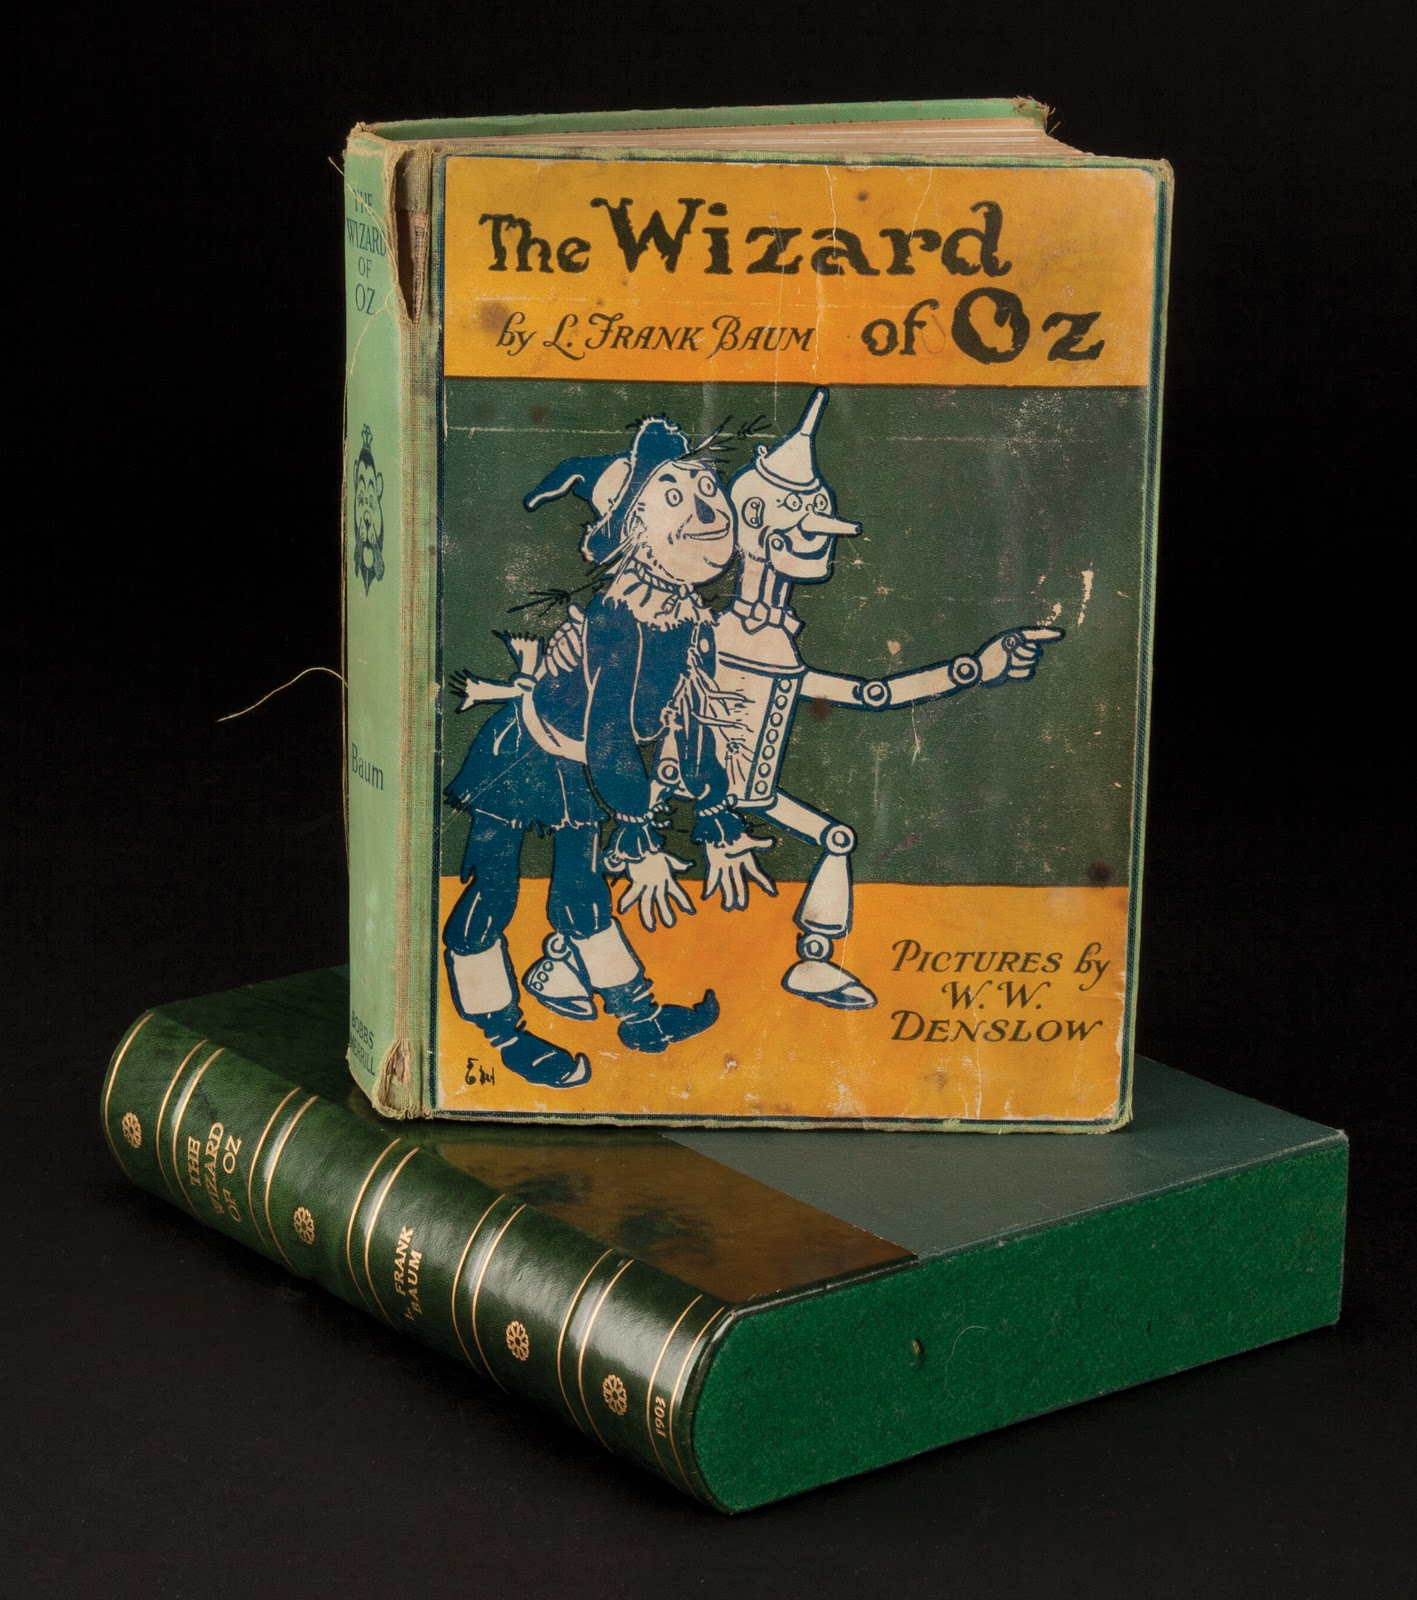 Feathered quill book reviews the wizard of oz vintage clothbound book